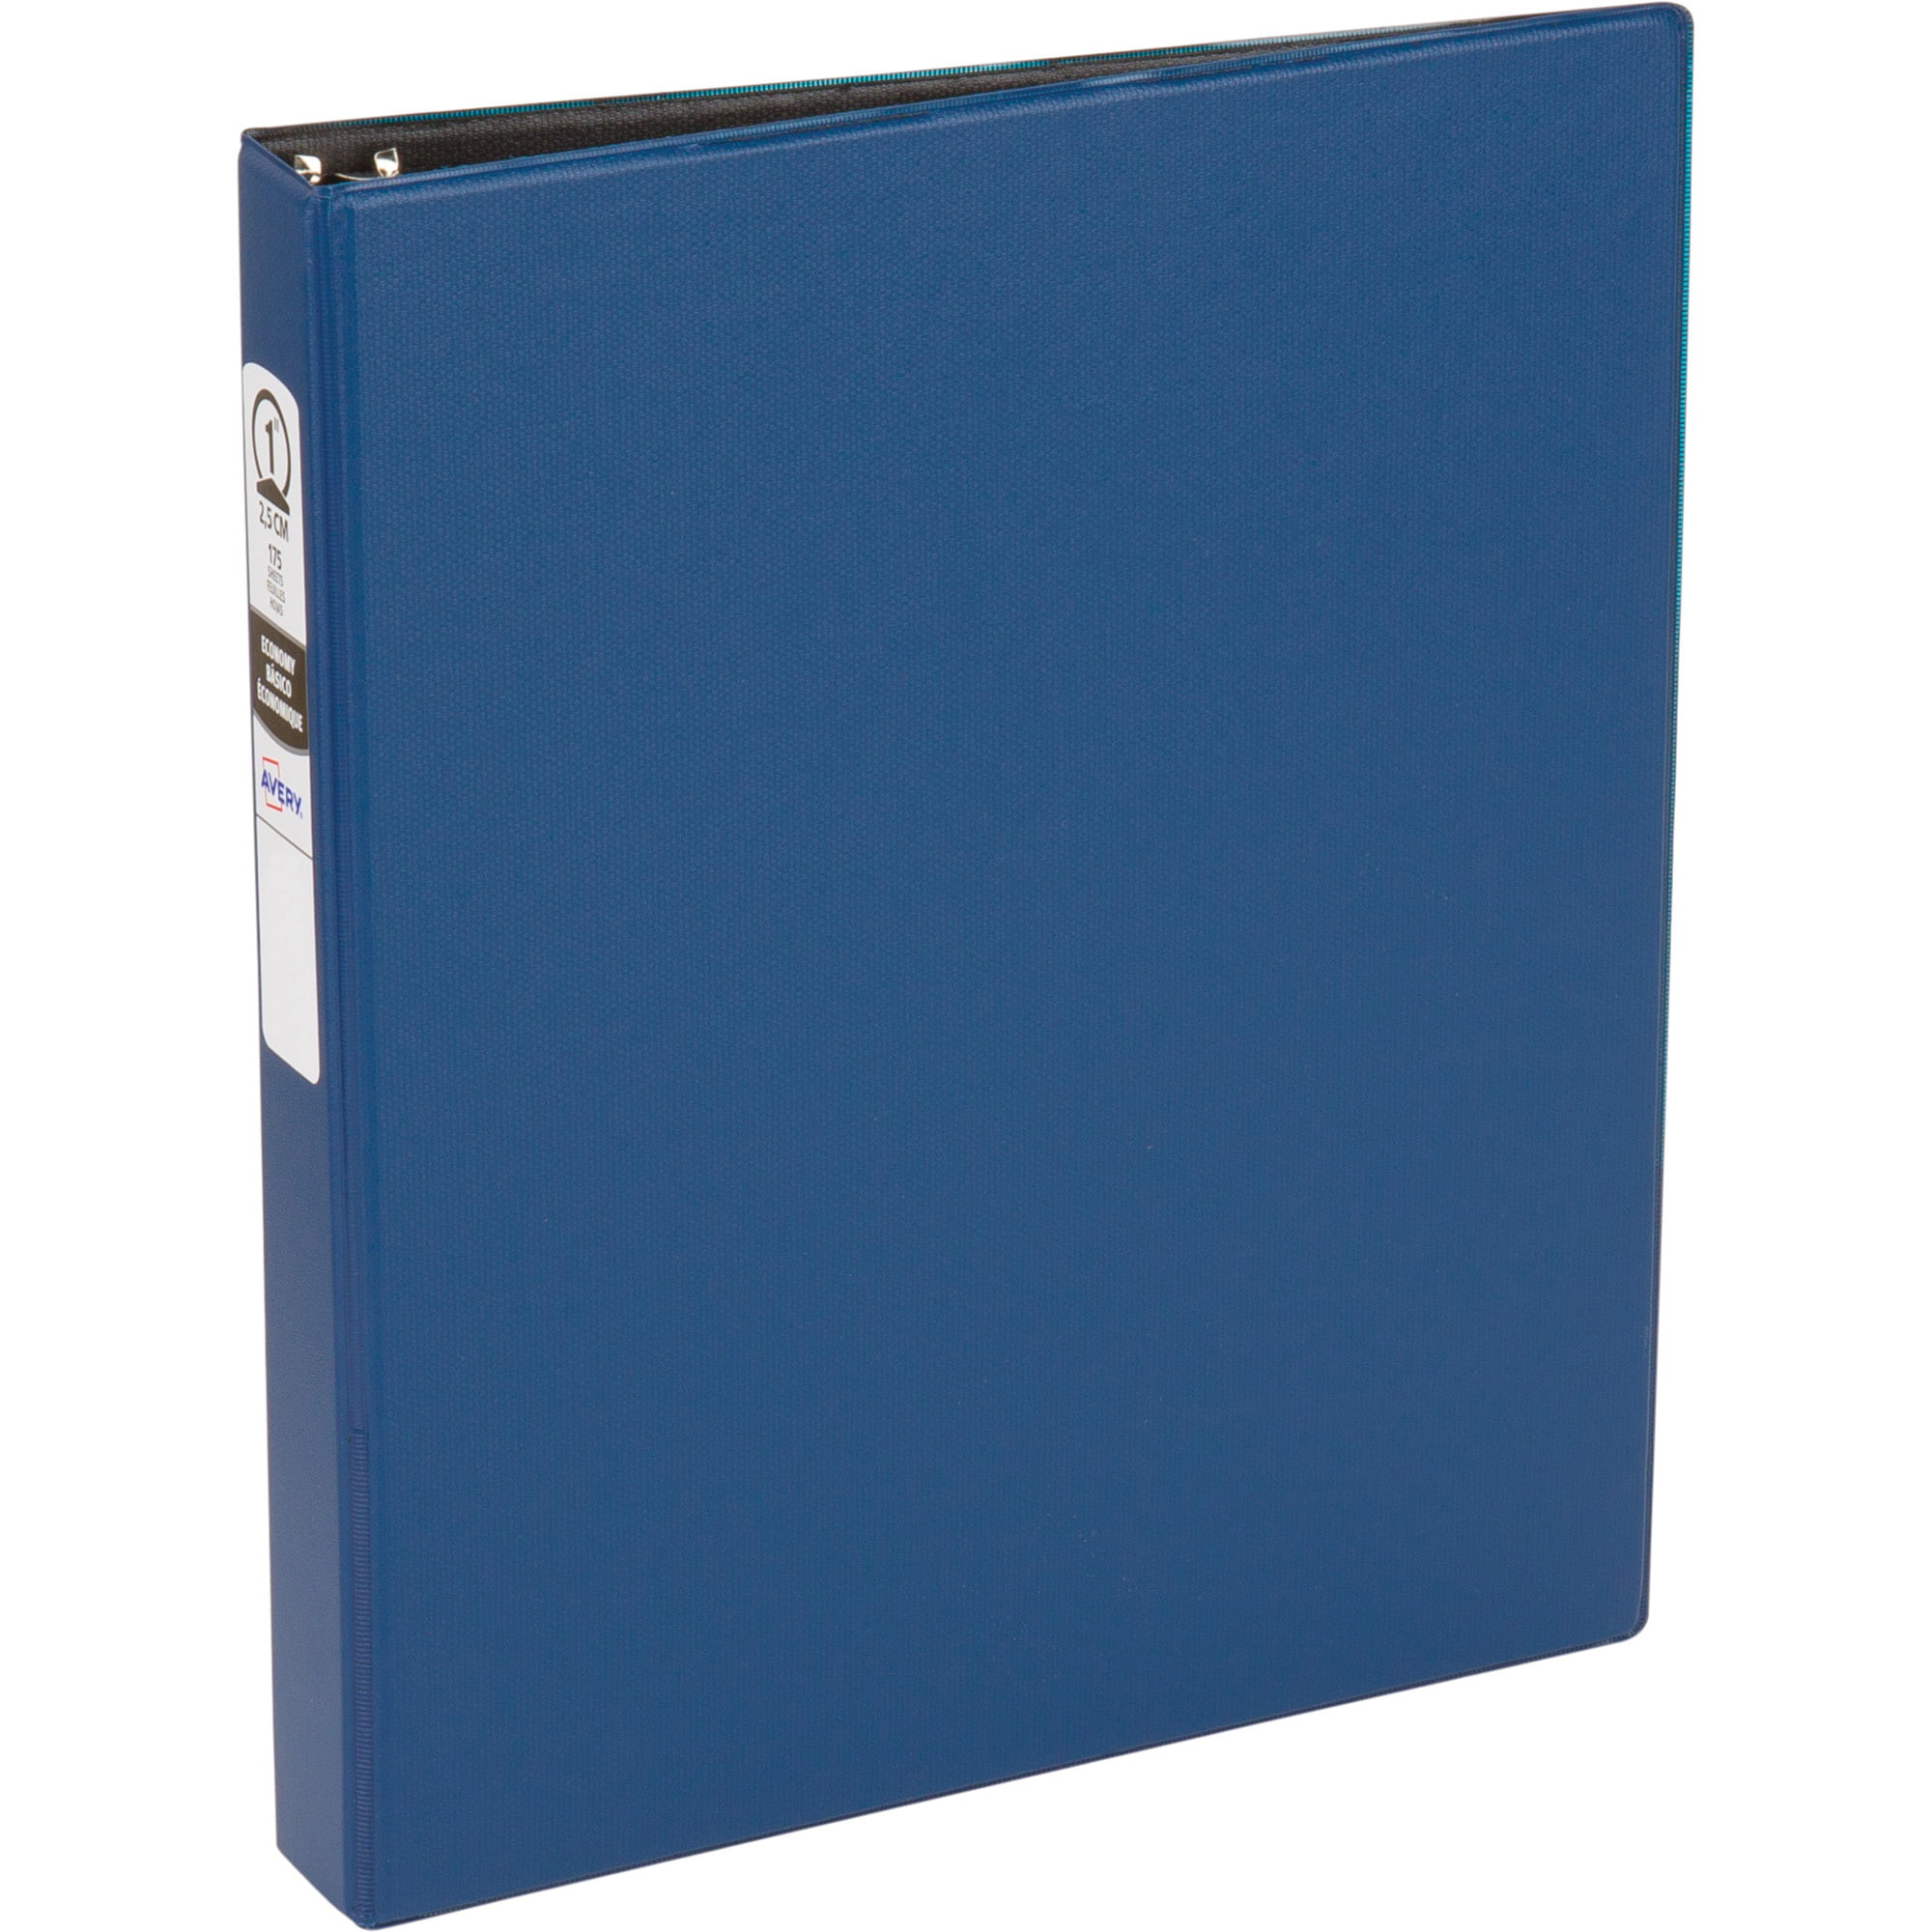 "Avery 1"" Economy Binder, Round Rings, Blue by Avery Products Corporation"